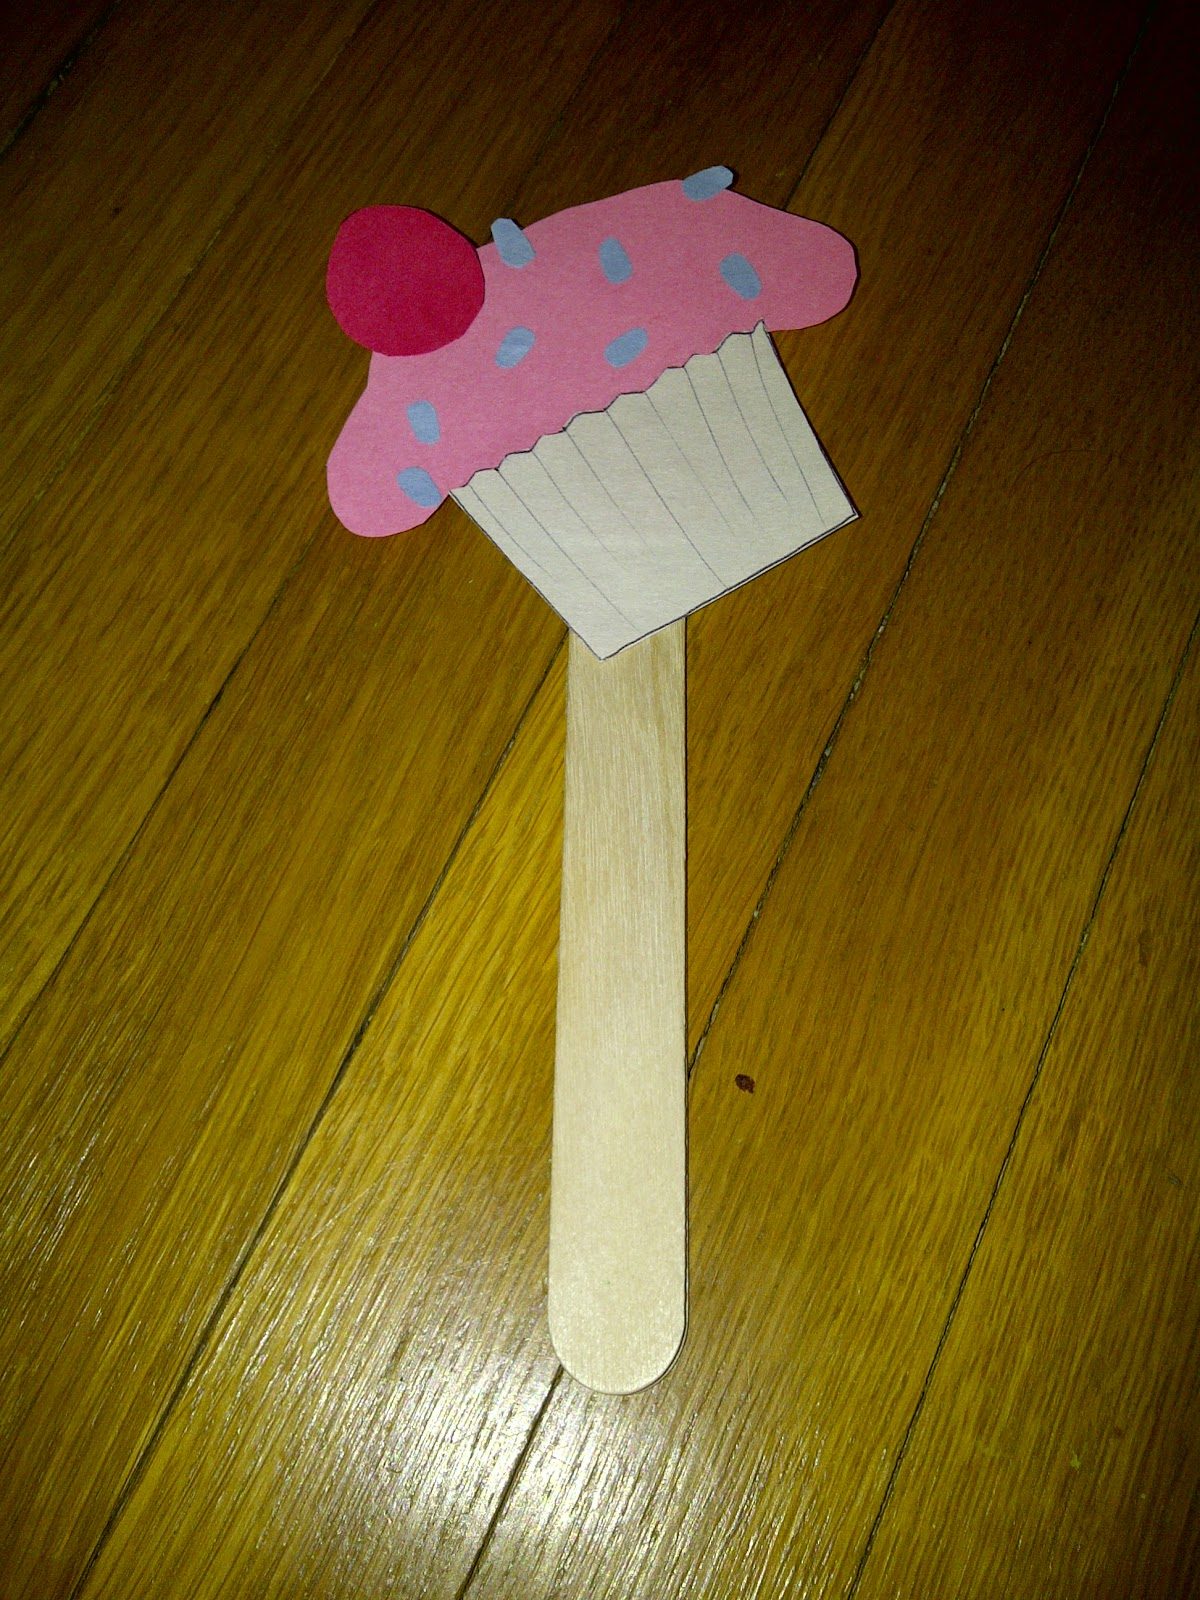 Popsicle Stick Crafts For Teenagers  craftshady